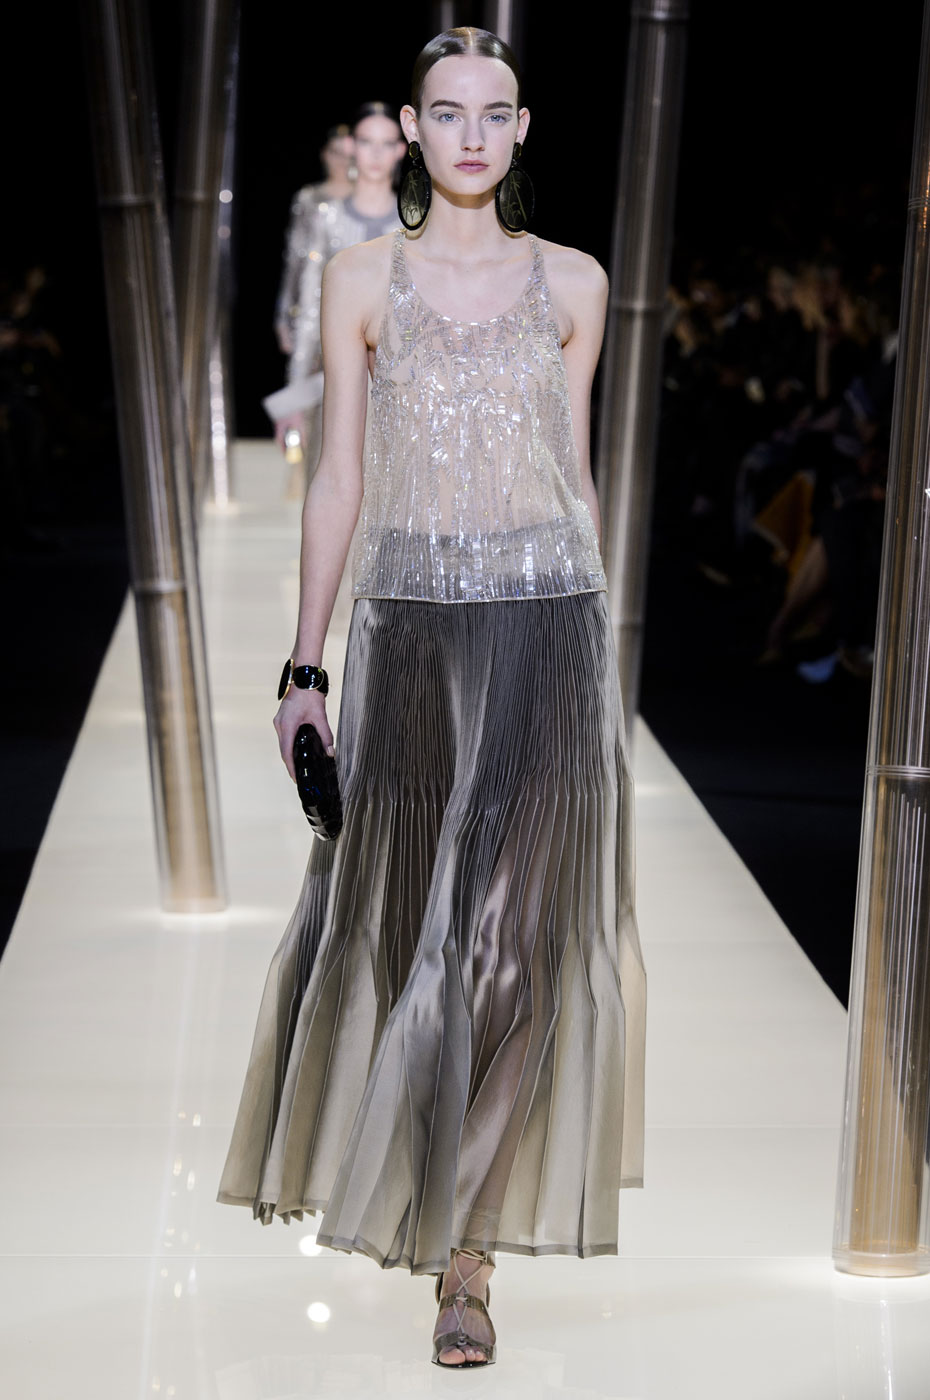 Giorgio-armani-Prive-fashion-runway-show-haute-couture-paris-spring-2015-the-impression-059